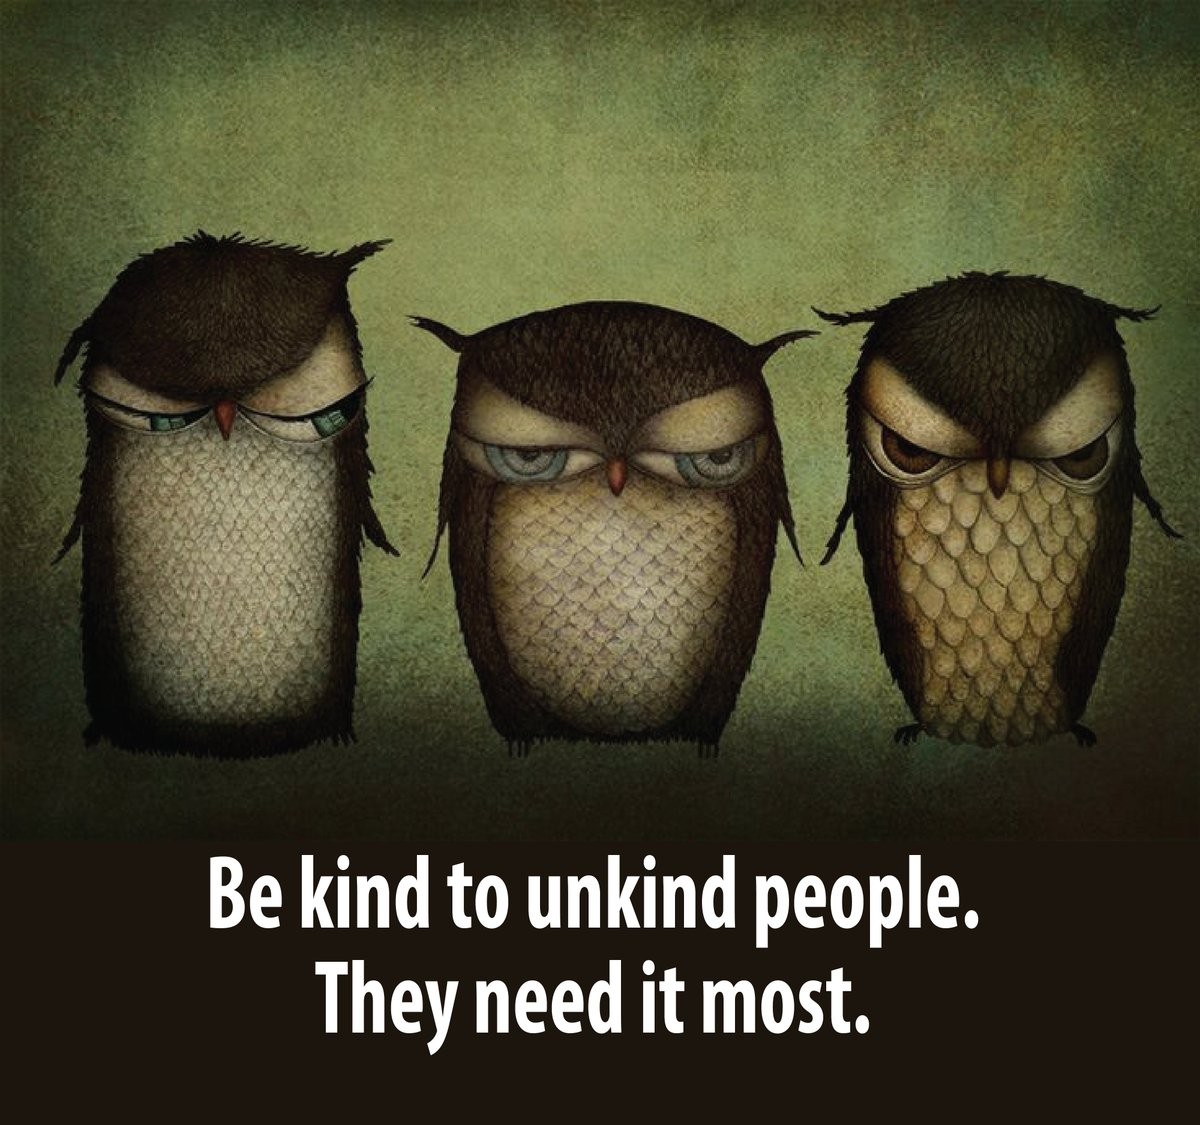 Mindful Living On Twitter Be Kind To Unkind People They Need It